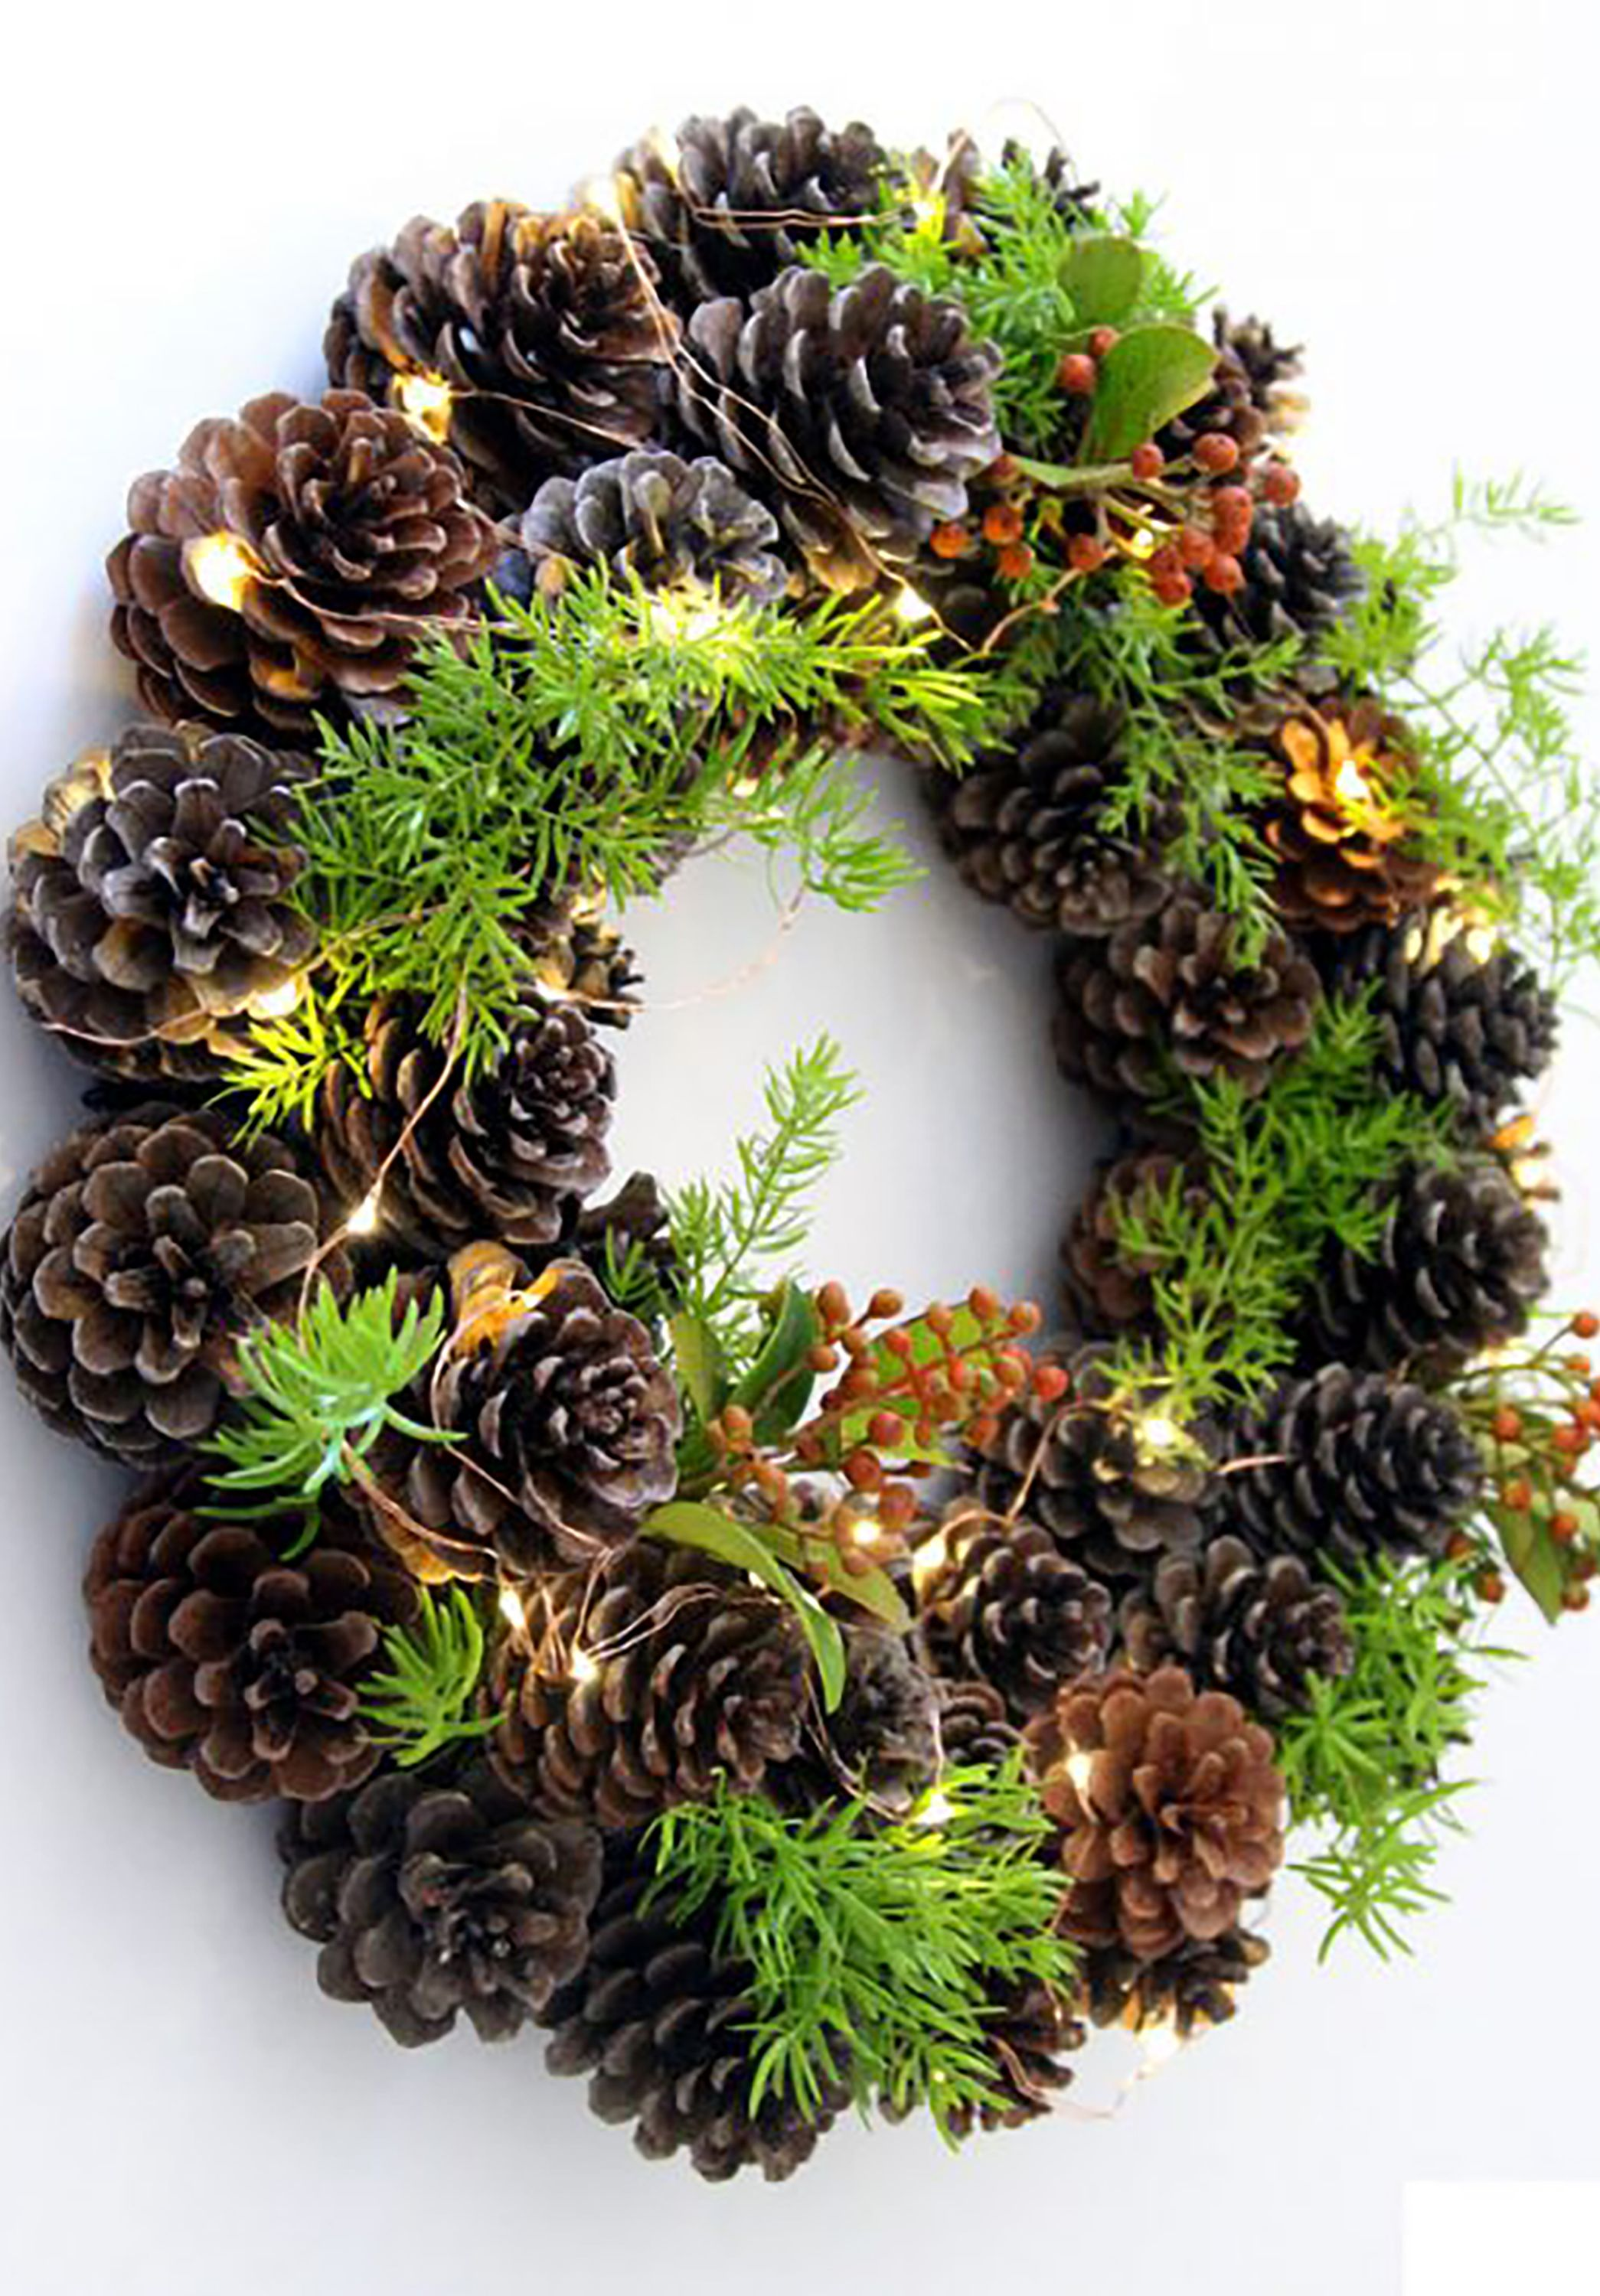 67 DIY Christmas Wreath Ideas - How To Make Holiday Wreaths Crafts